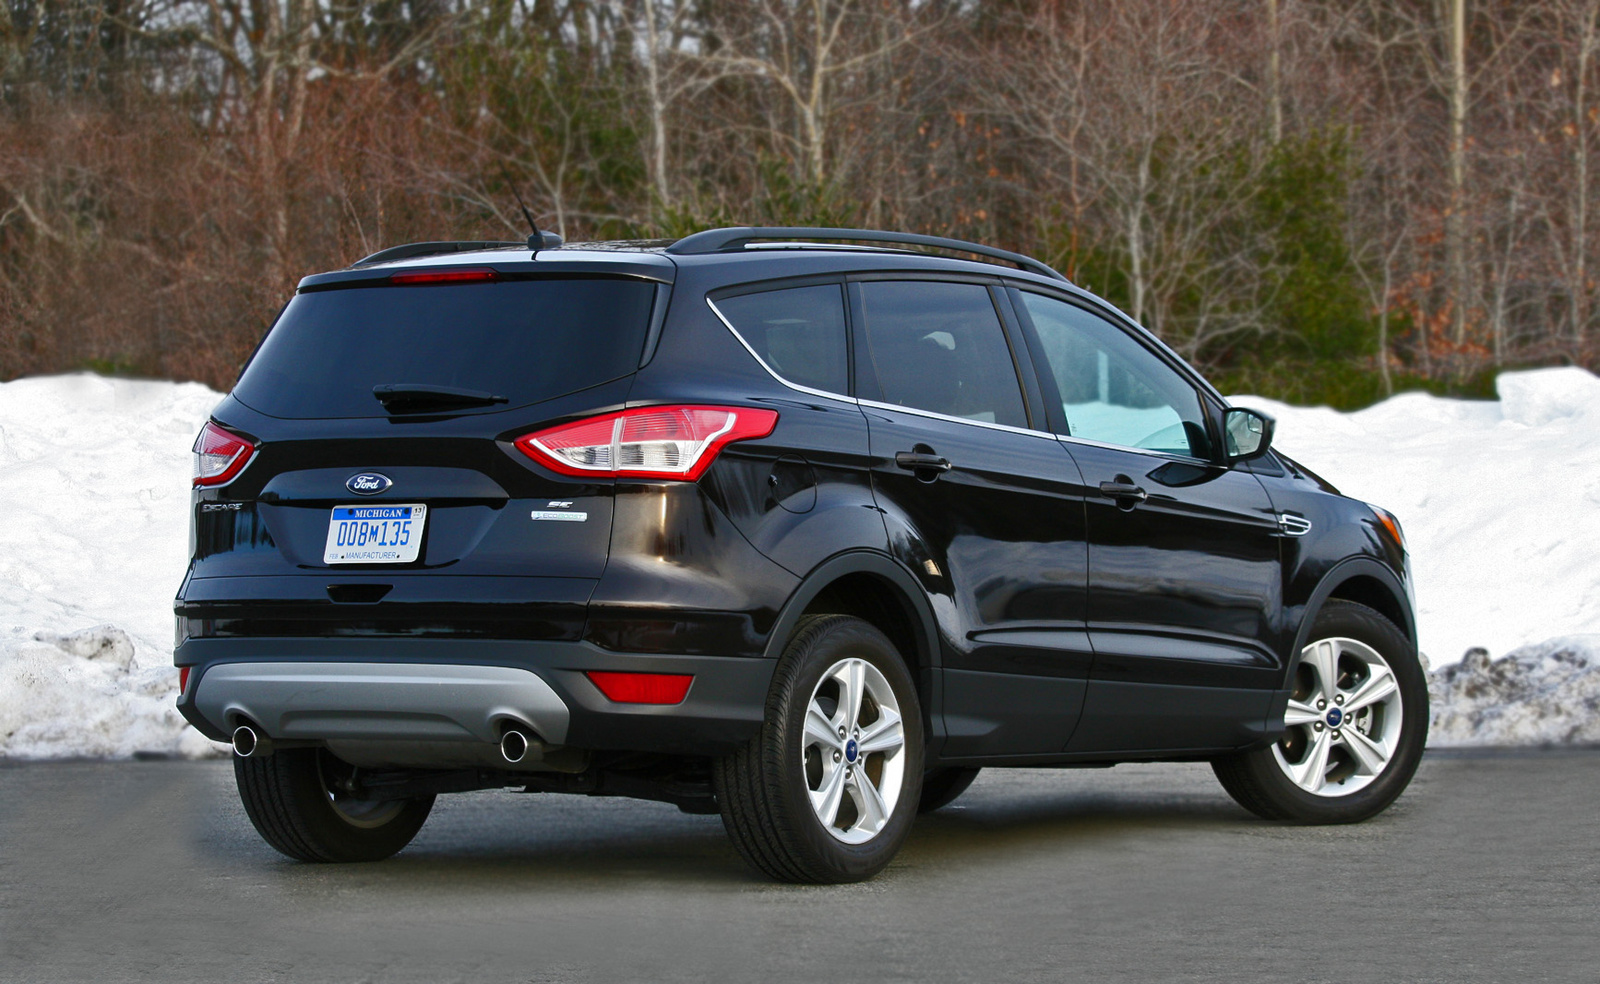 2013 Ford Escape, Rear-quarter view, cost_effectiveness, exterior